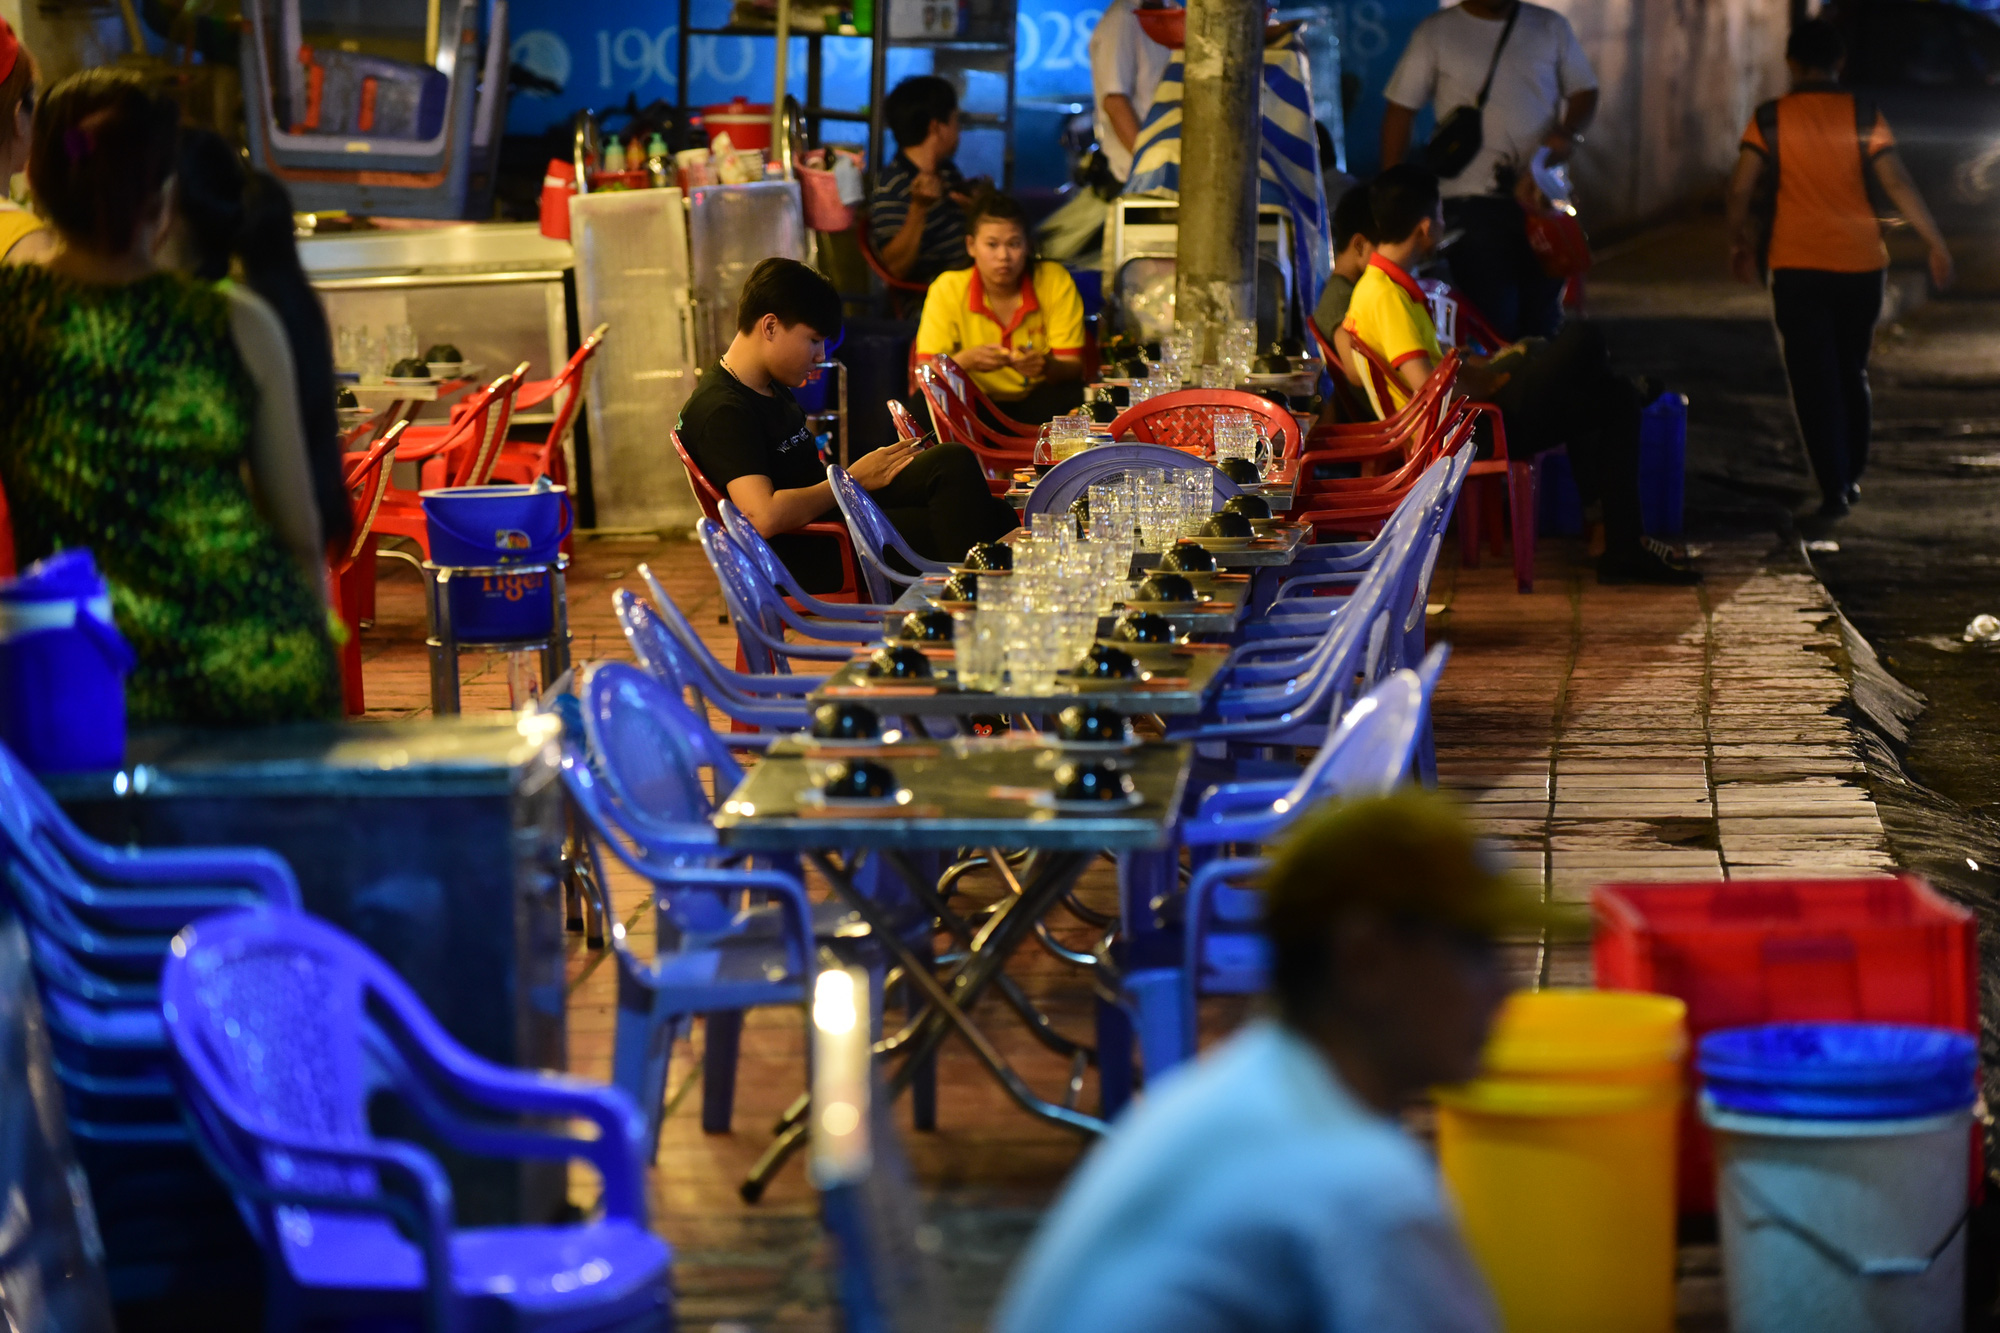 A beer parlor on Nguyen Bieu Street in District 5 is empty in this photo captured in 2020, after Vietnam's new law on drunk driving took effect. Photo: Quang Dinh / Tuoi Tre